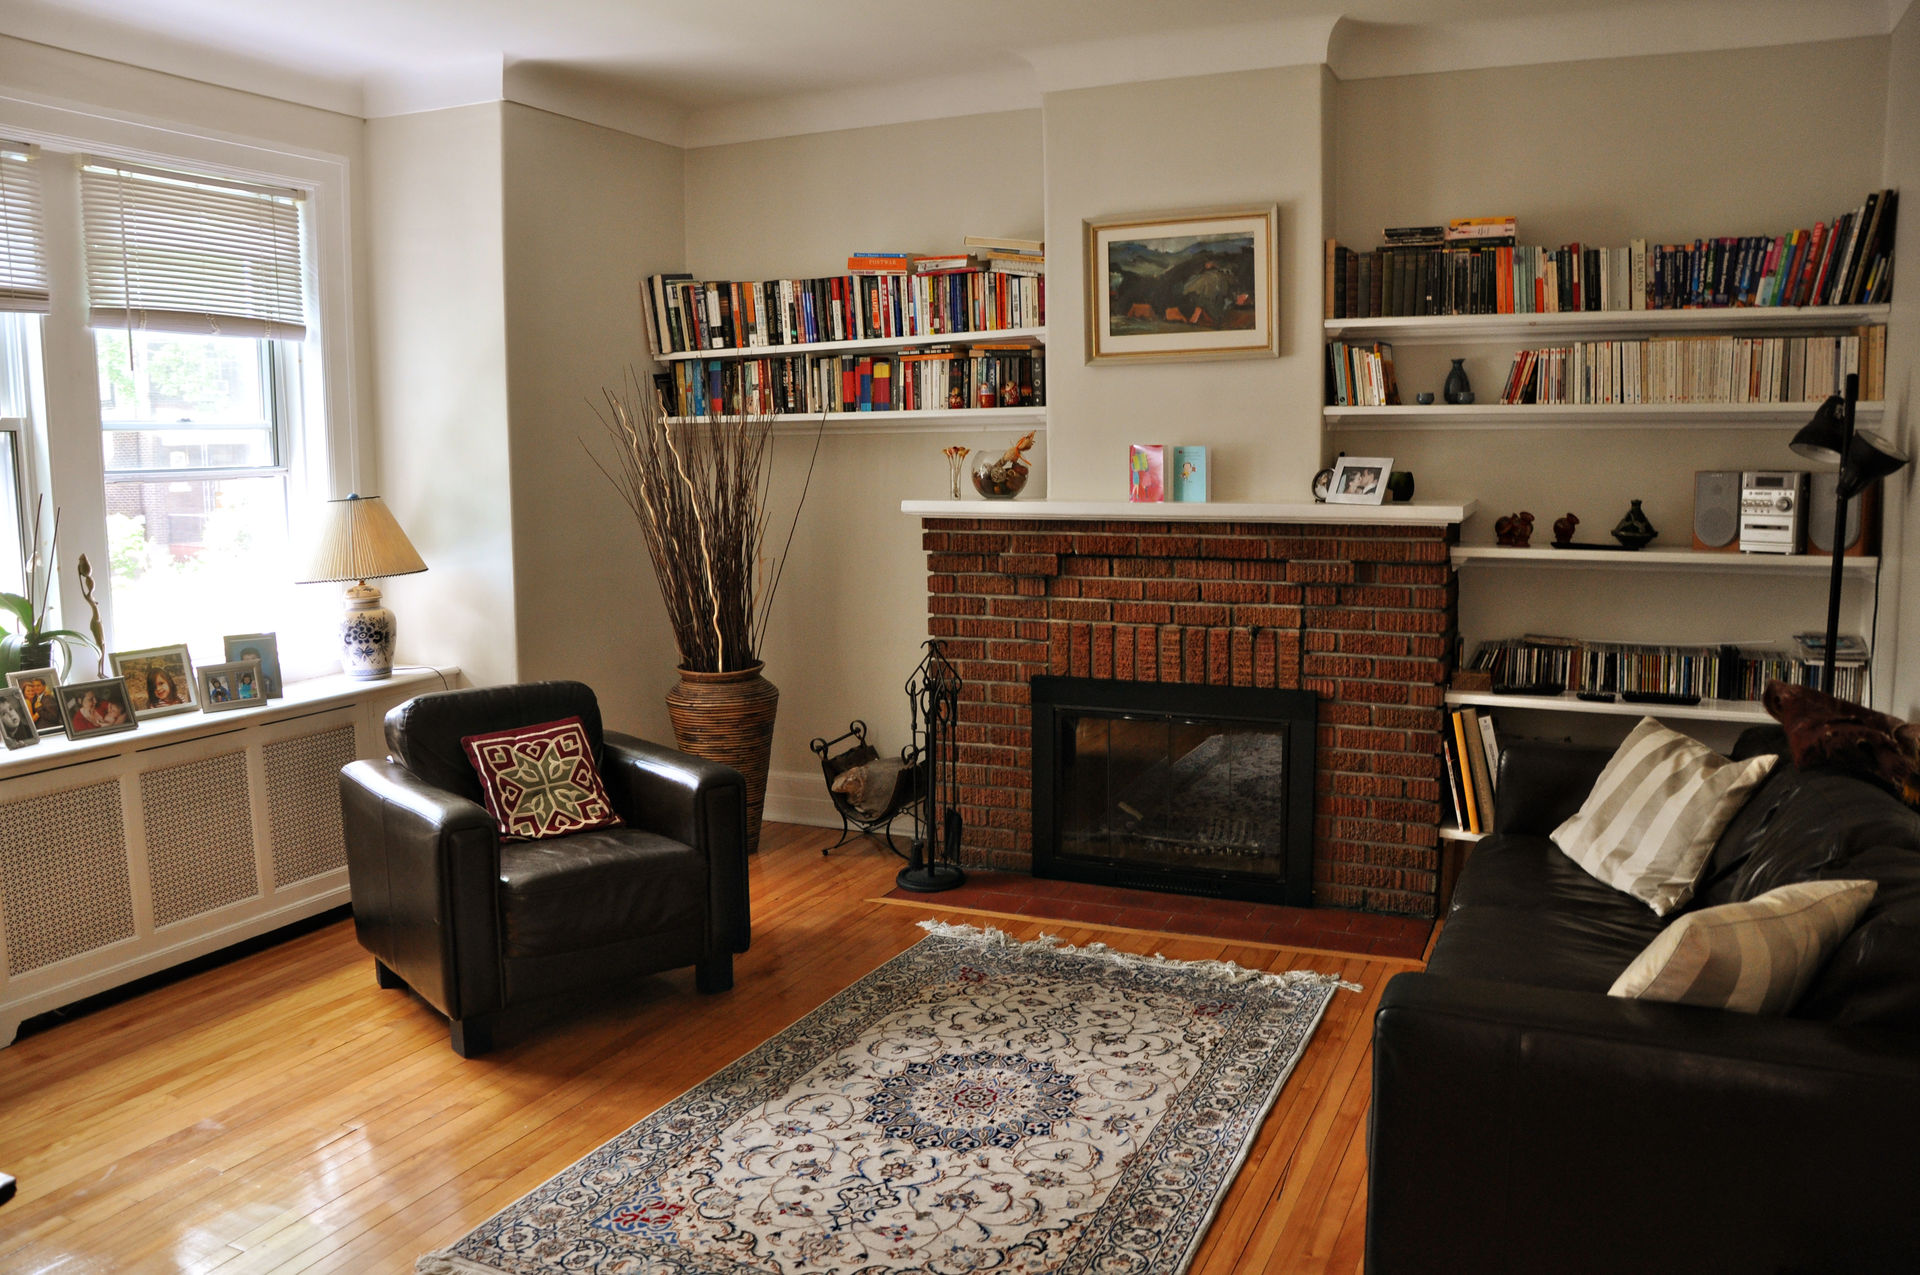 Meuble Salle De Bain Tiger Frames ~ Beautiful Large House In Monkland Village Montreal Home Exchange